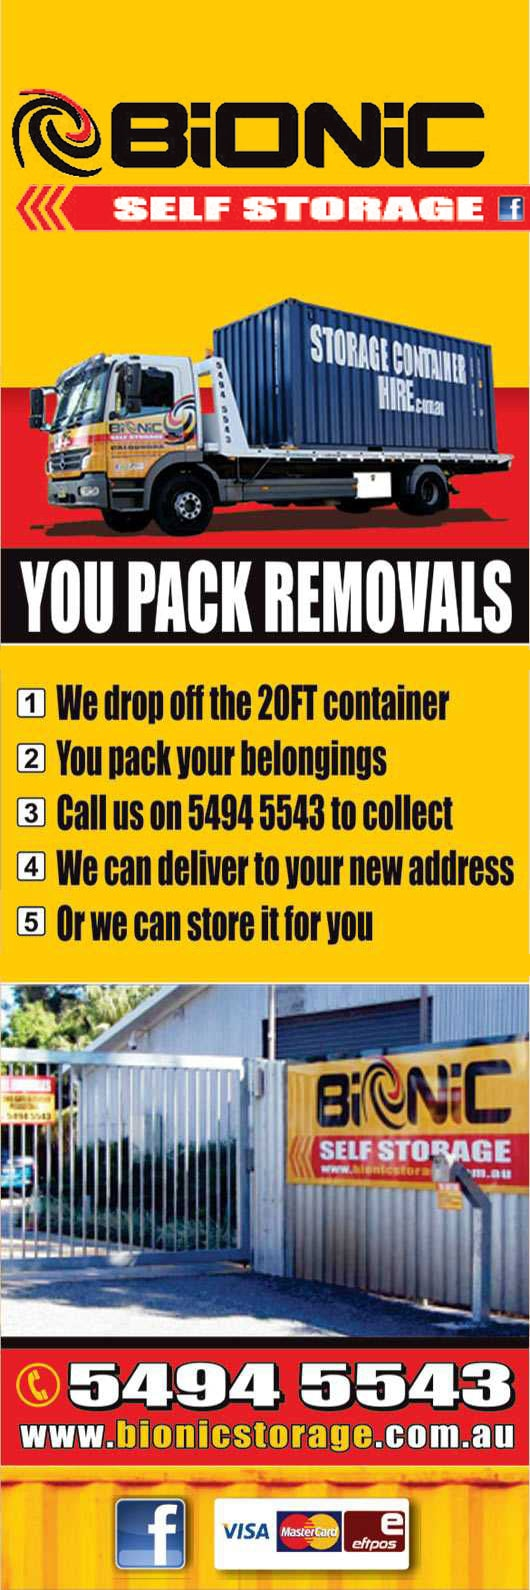 Bionic Self Storage - Storage Container Hire - Promotion  sc 1 st  Yellow Pages & Bionic Self Storage - Storage Container Hire - Furniture Removalists ...